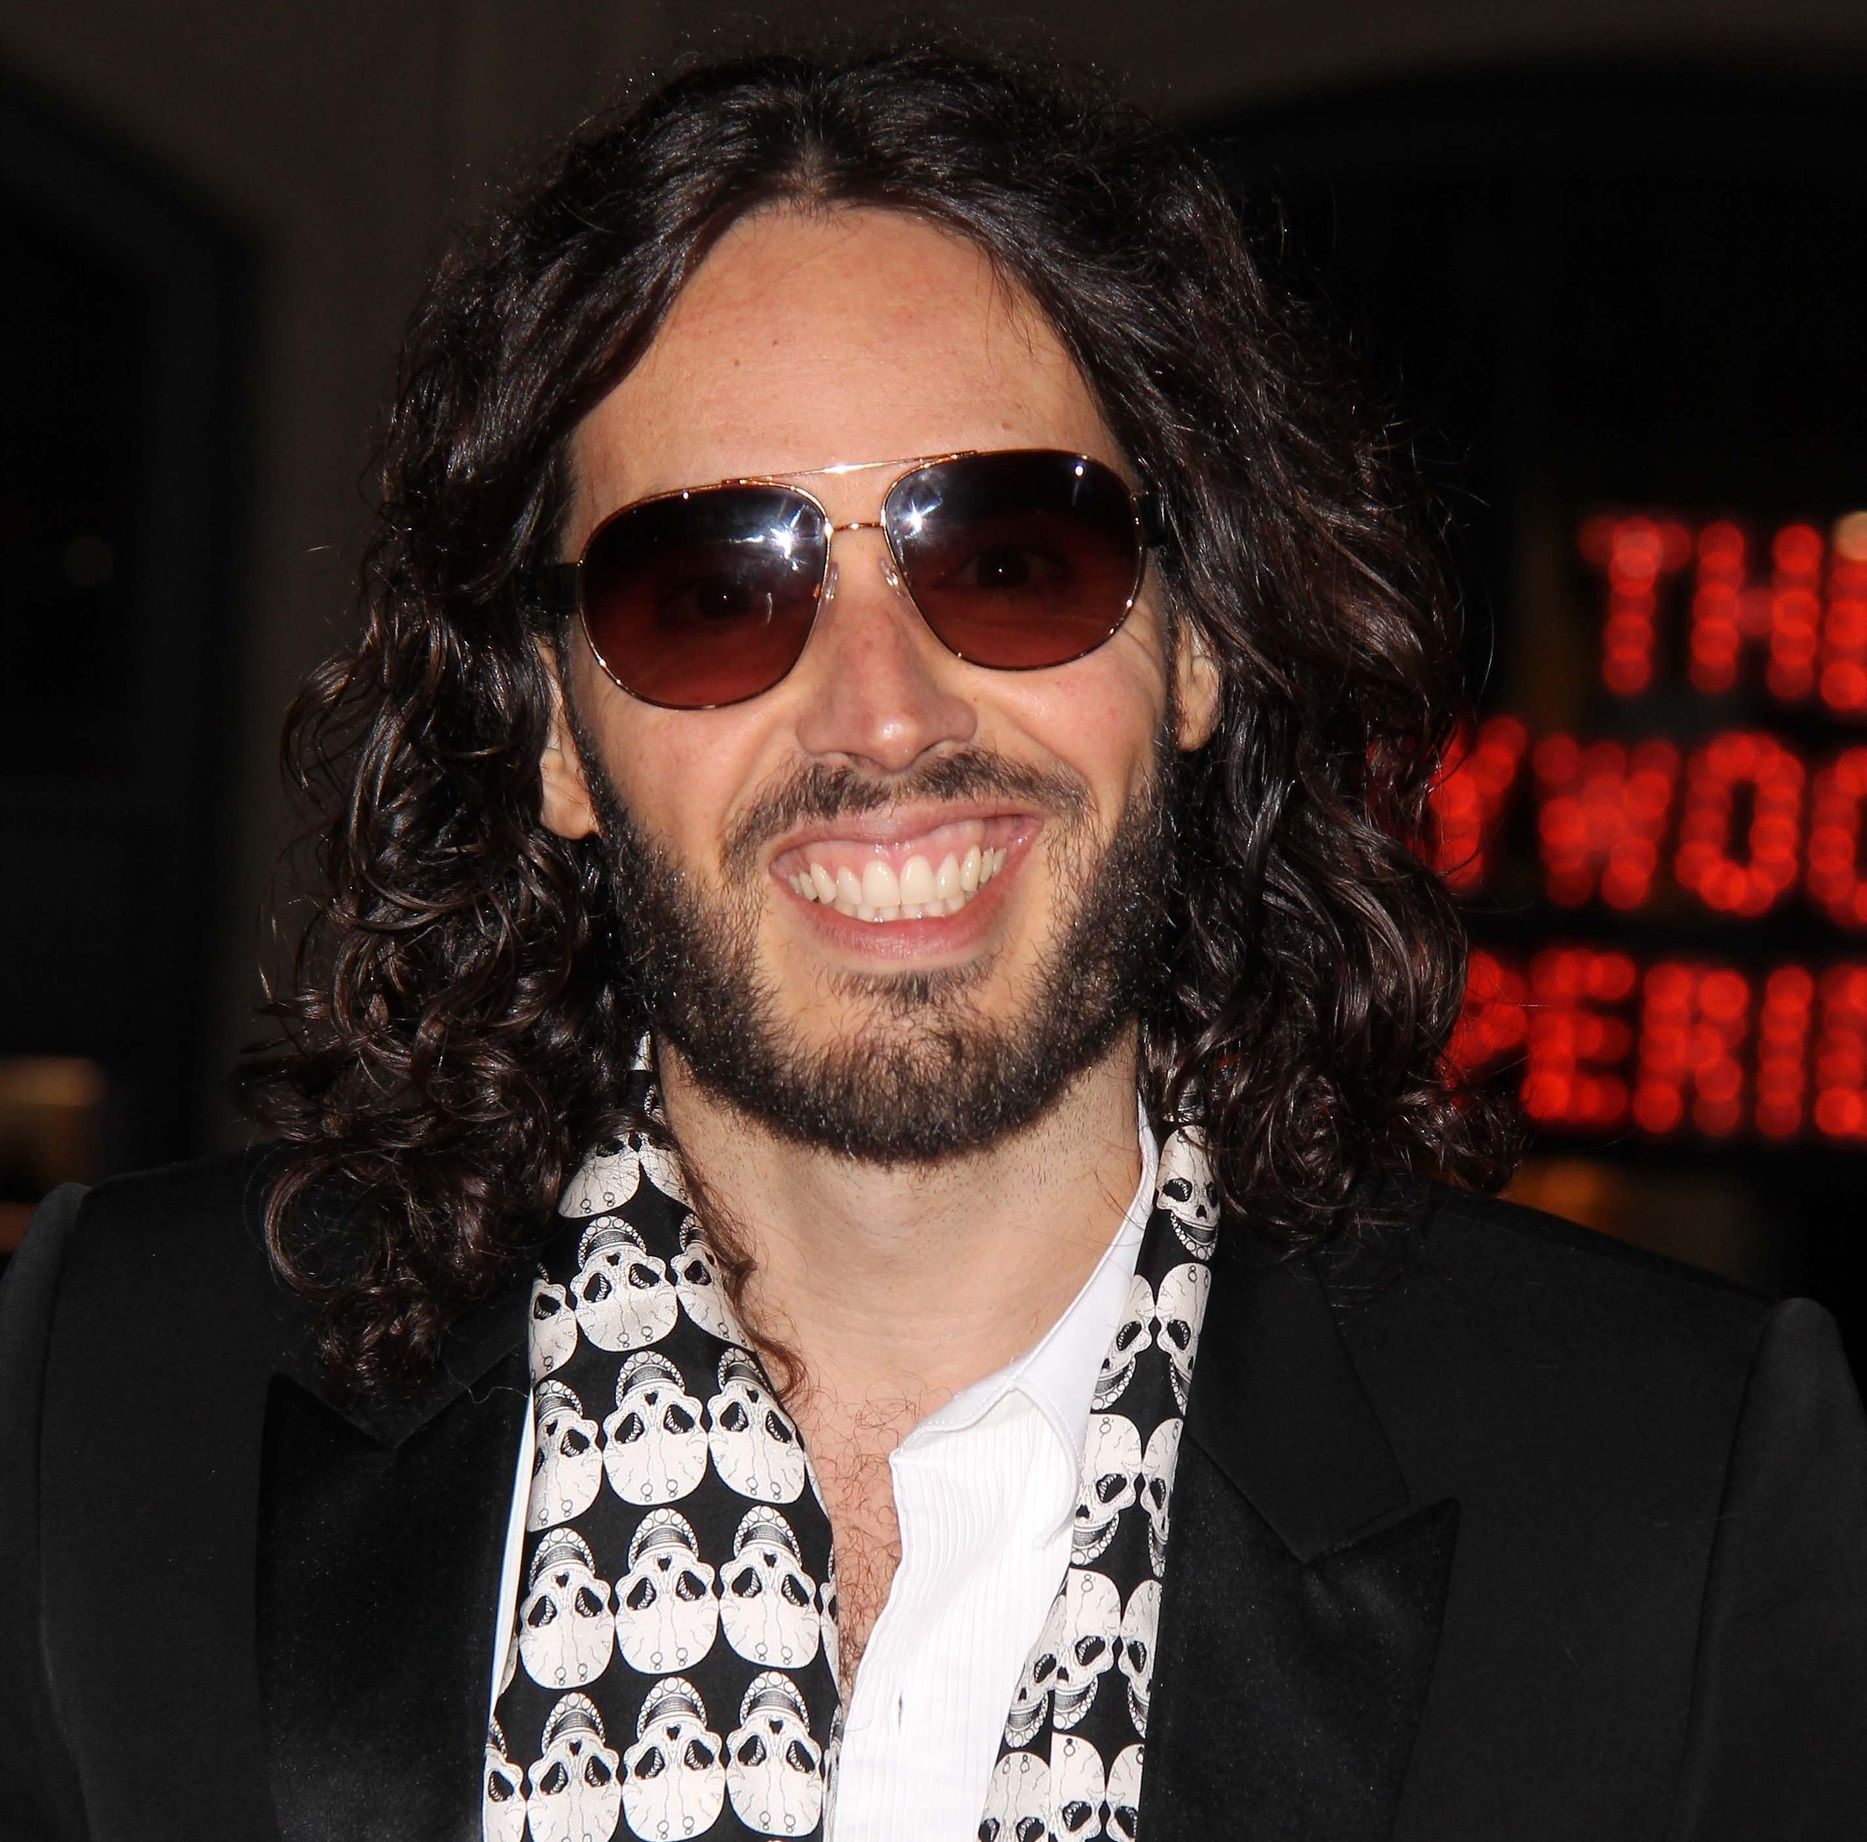 17. Russell Brand